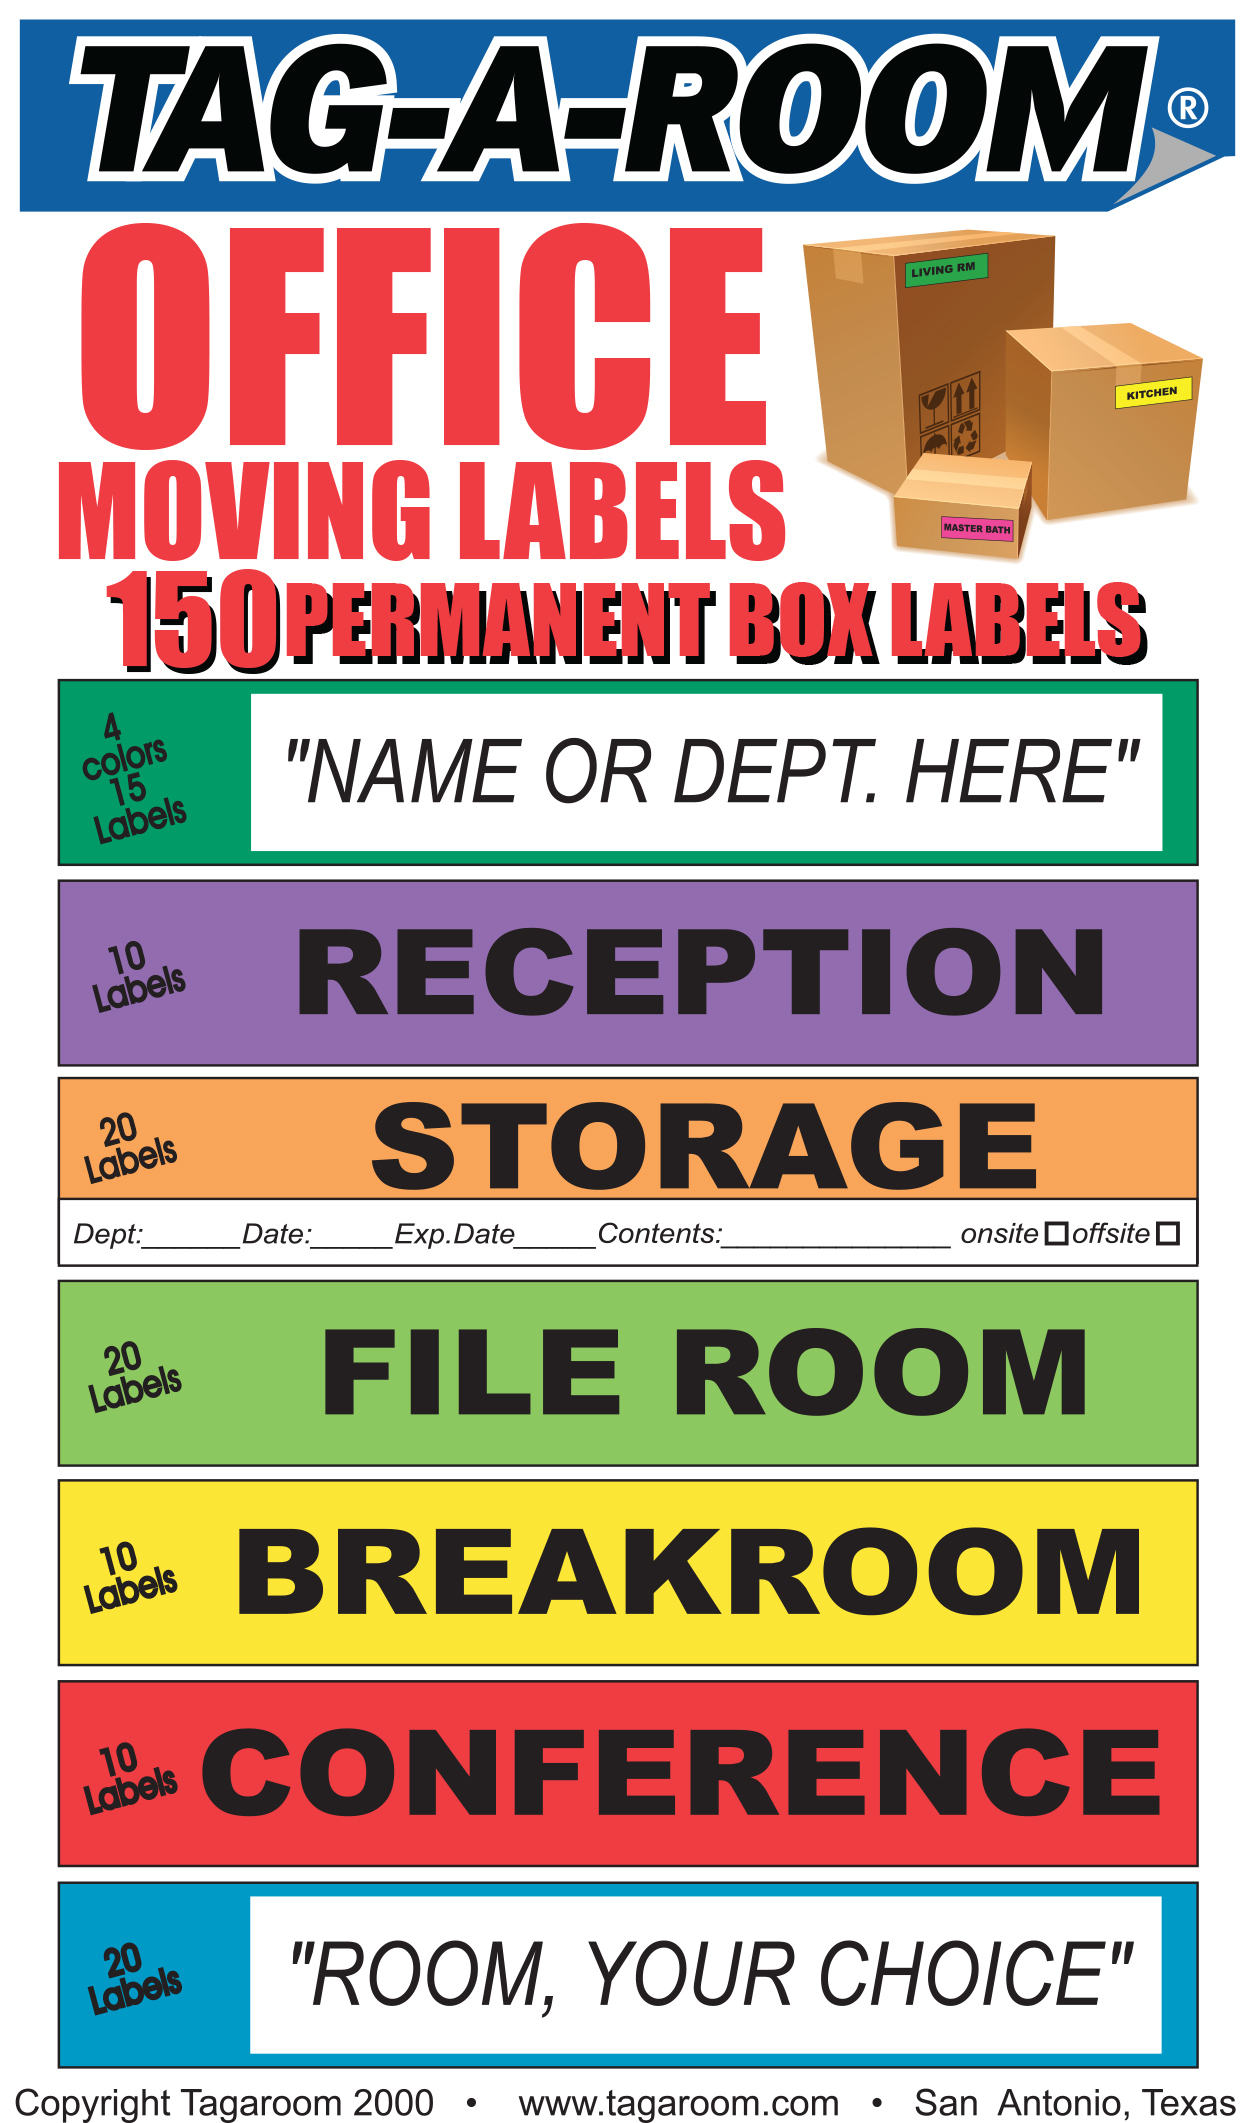 Office Moving Labels 1301003